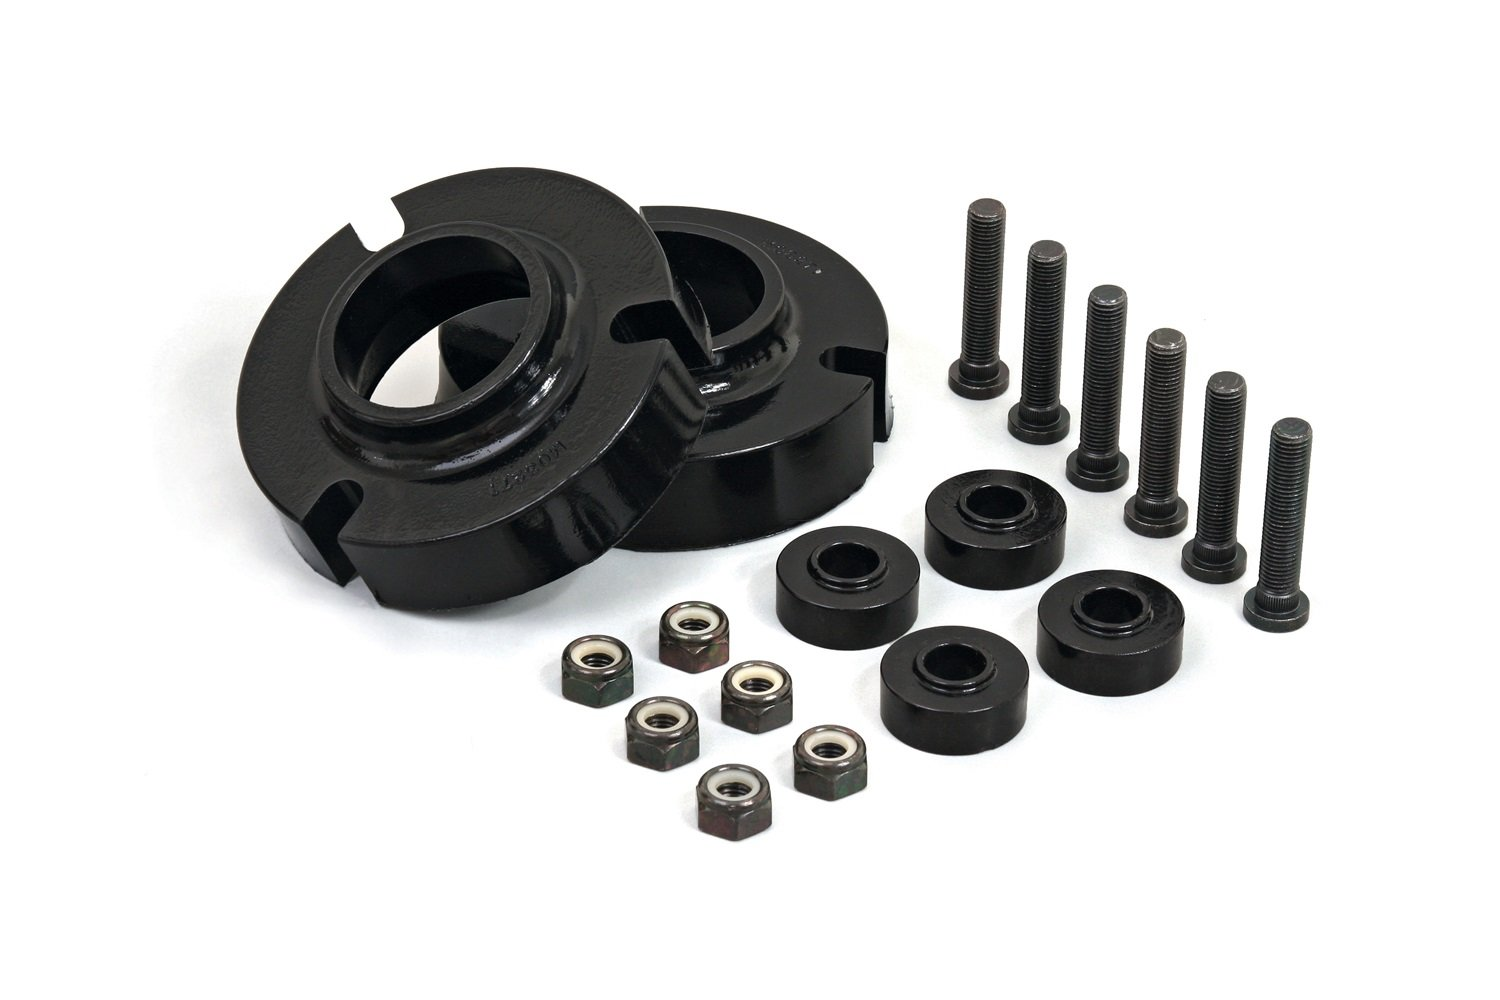 Daystar, Toyota Tacoma 1' Leveling Kit, fits Tacoma, 4 Runner and Tundra 1995.5 to 2006 2/4WD, all transmissions, all cabs KT09105BK, Made in America, Black Toyota Tacoma 1 Leveling Kit